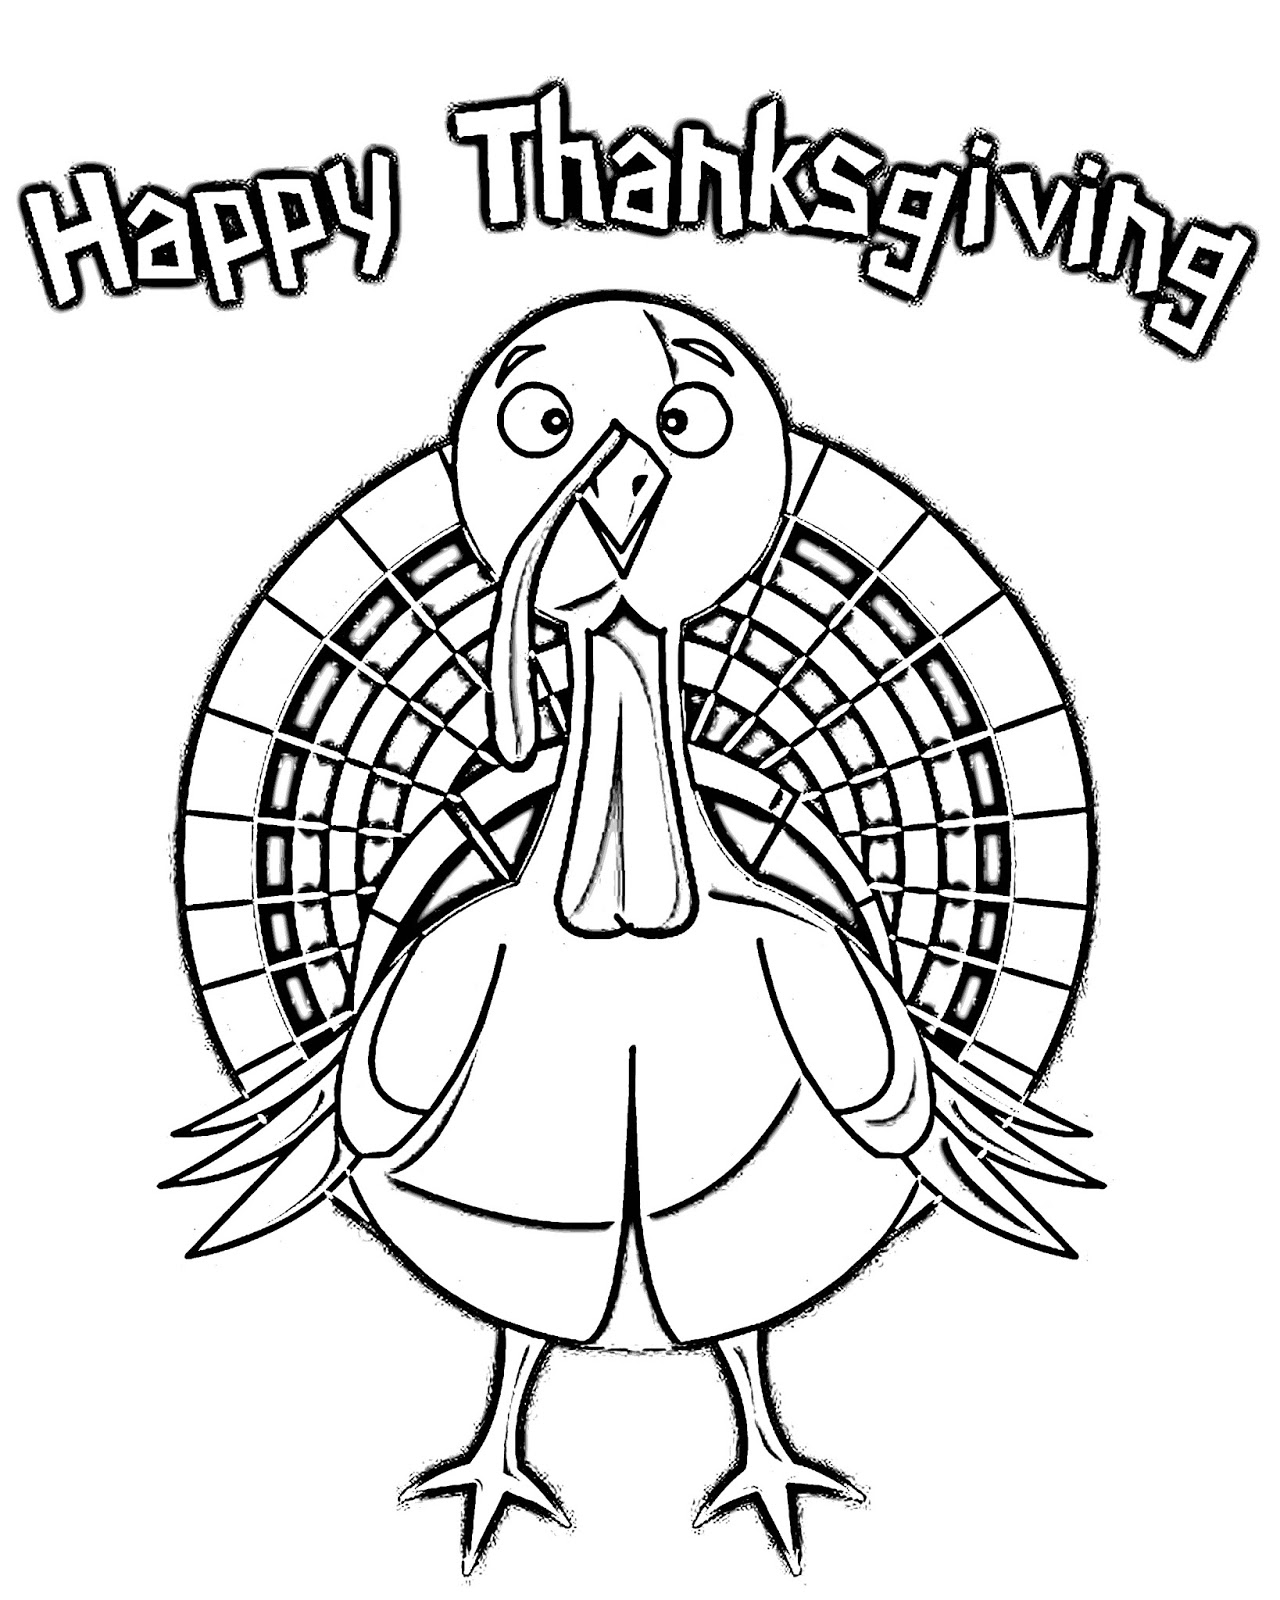 Cjo Photo Thanksgiving Coloring Page Happy Thanksgiving Turkey